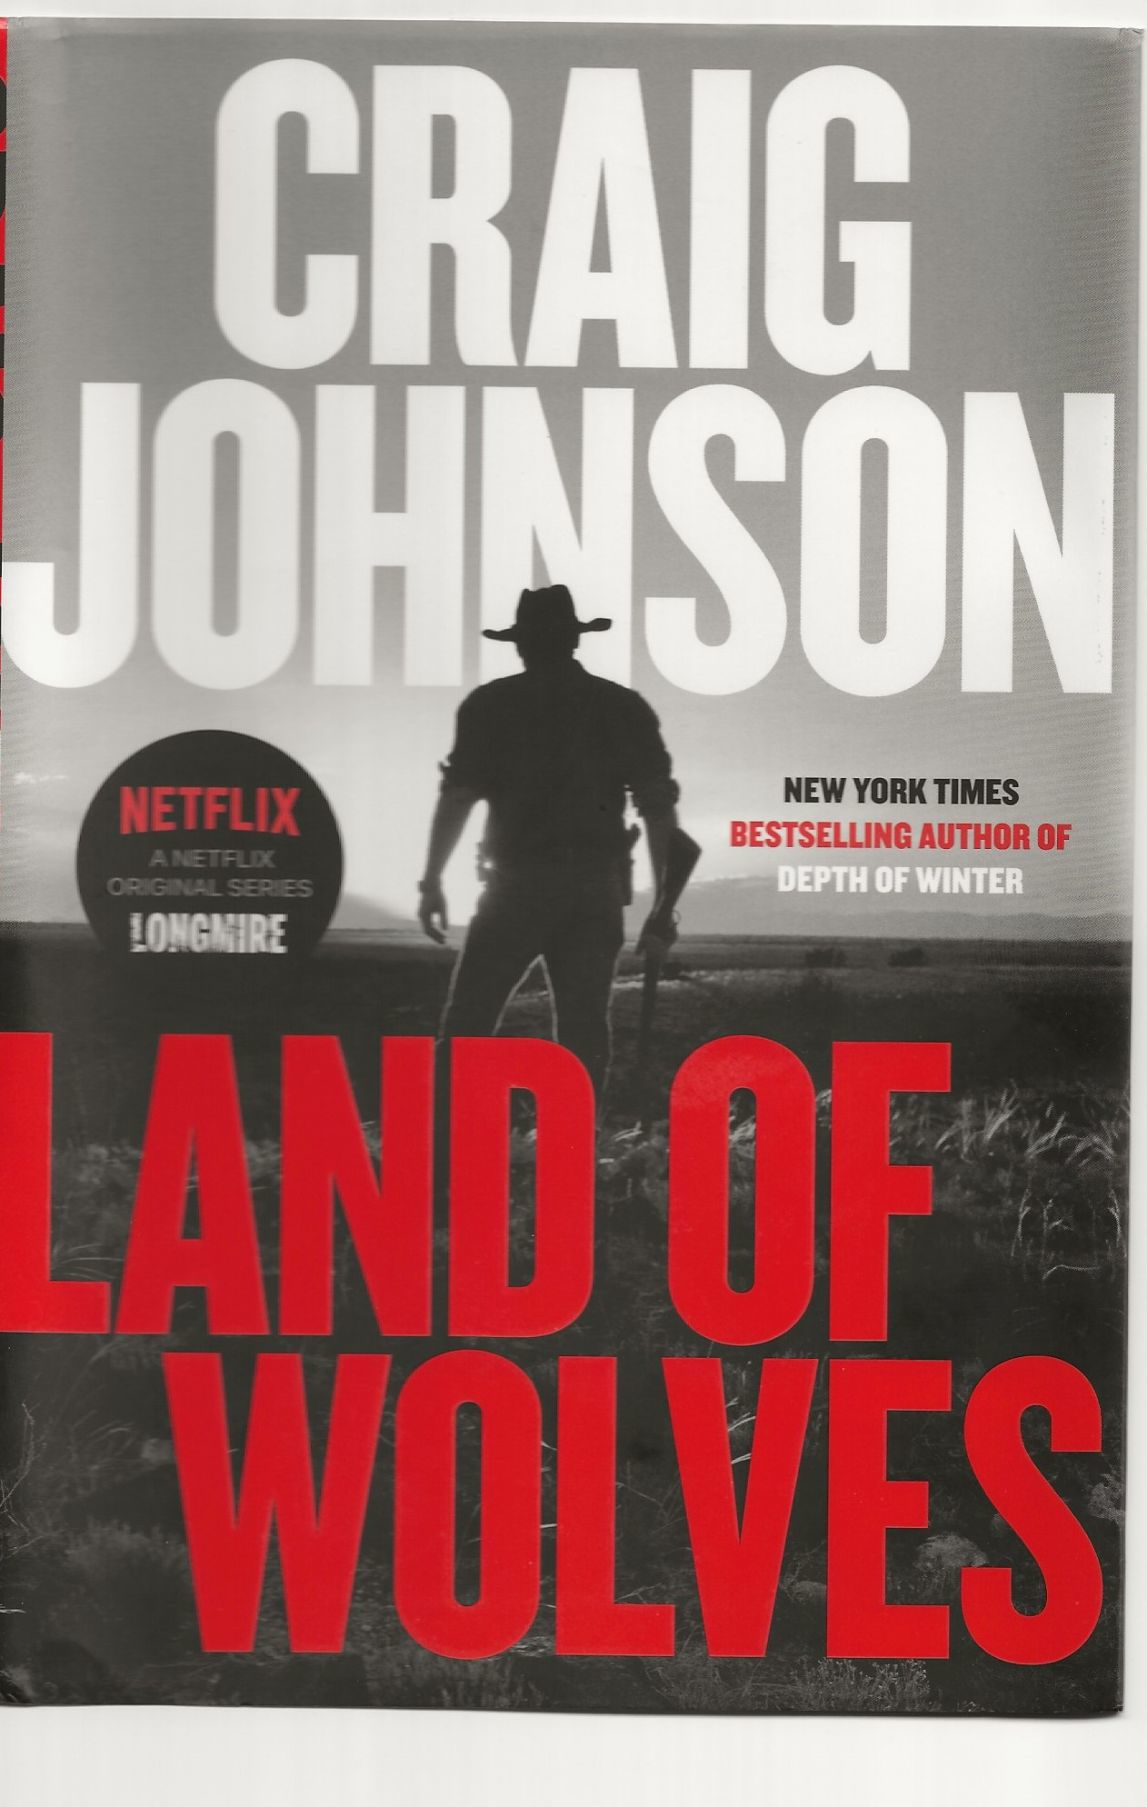 20191128-gm-book-Cover of LAND OF WOLVES.jpg